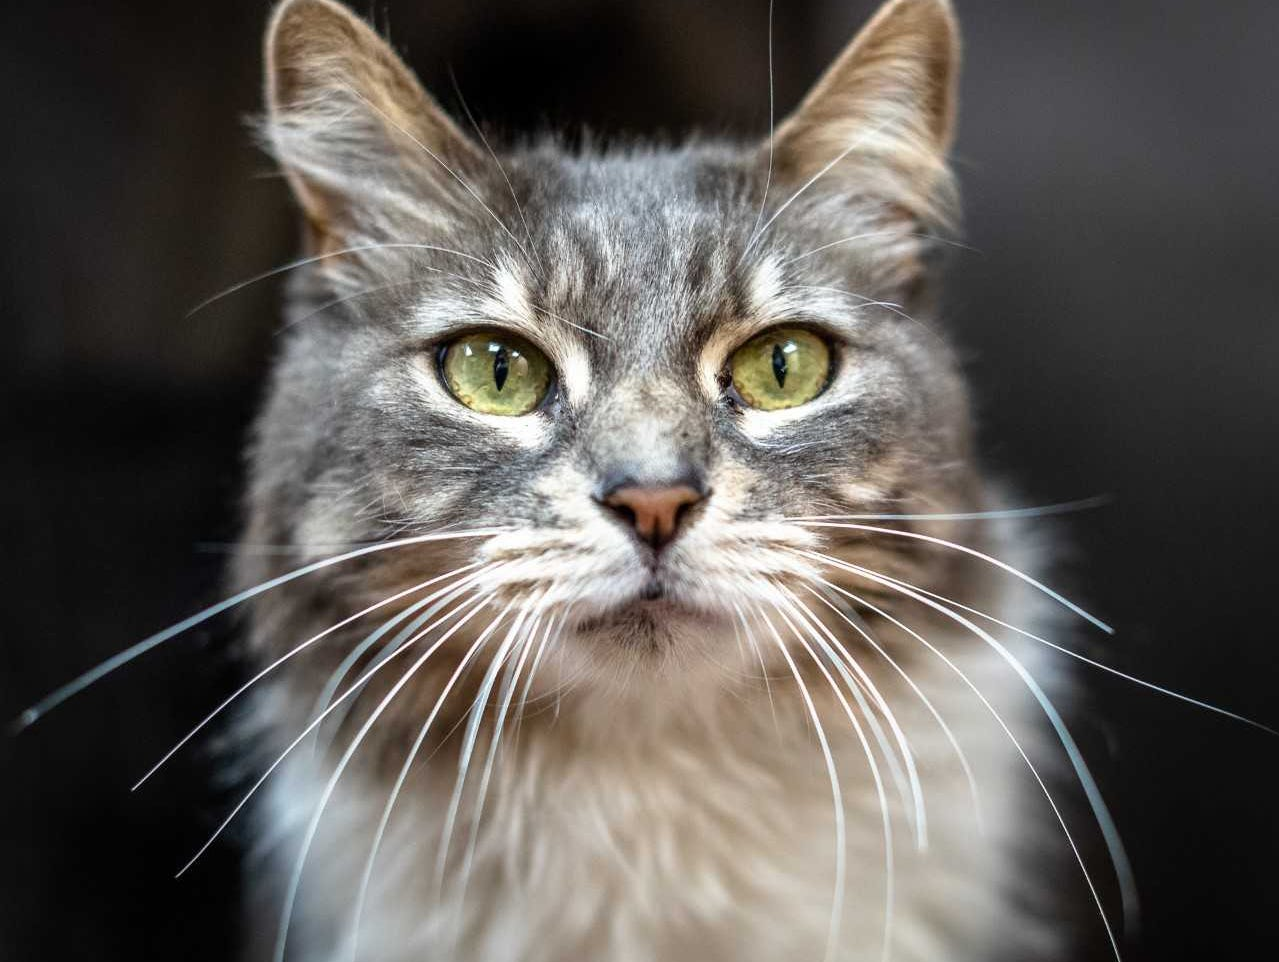 Lucky - Female (spayed) domestic medium hair, about 5 years old. Intake date: 11-27-2018